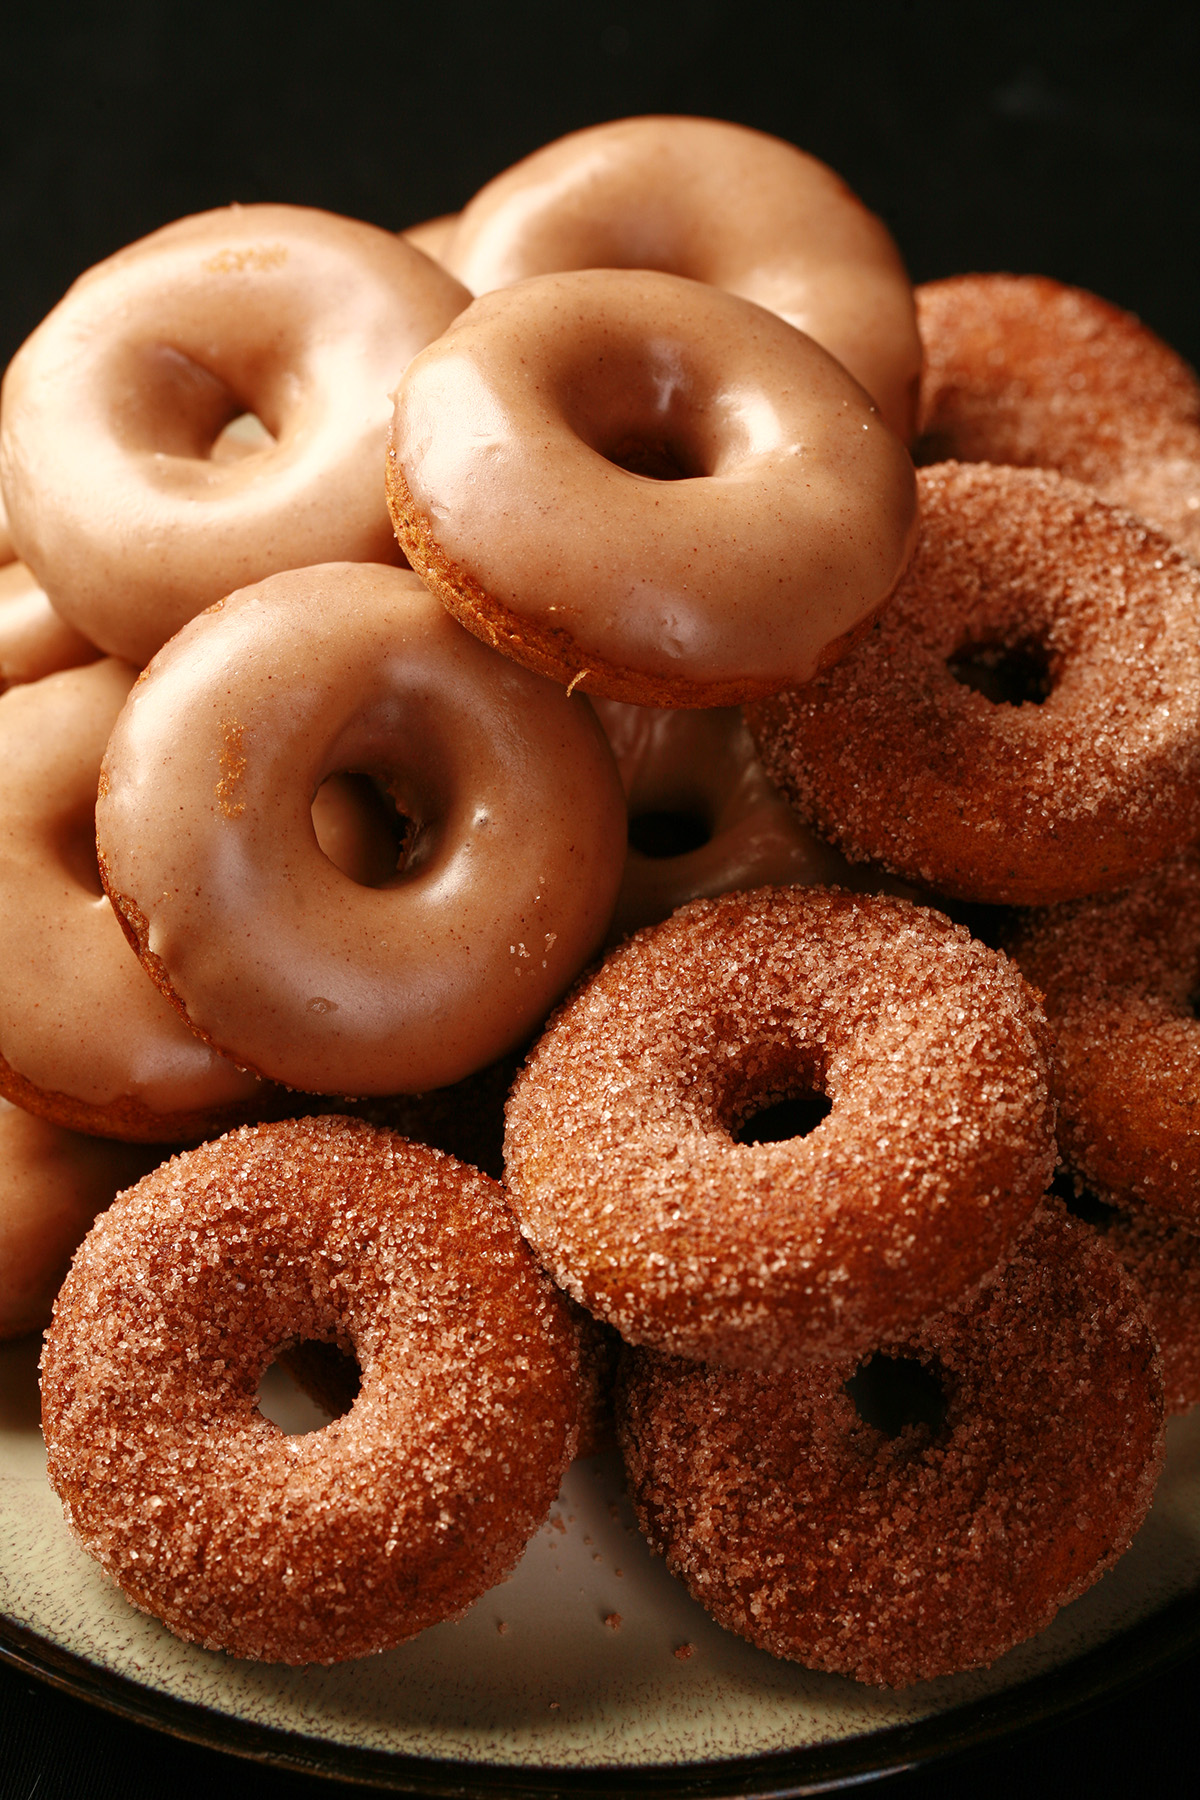 Close up view of gluten-free pumpkin spice mini doughnuts. Some are coated in cinnamon sugar, others are glazed with a tan coloured frosting.